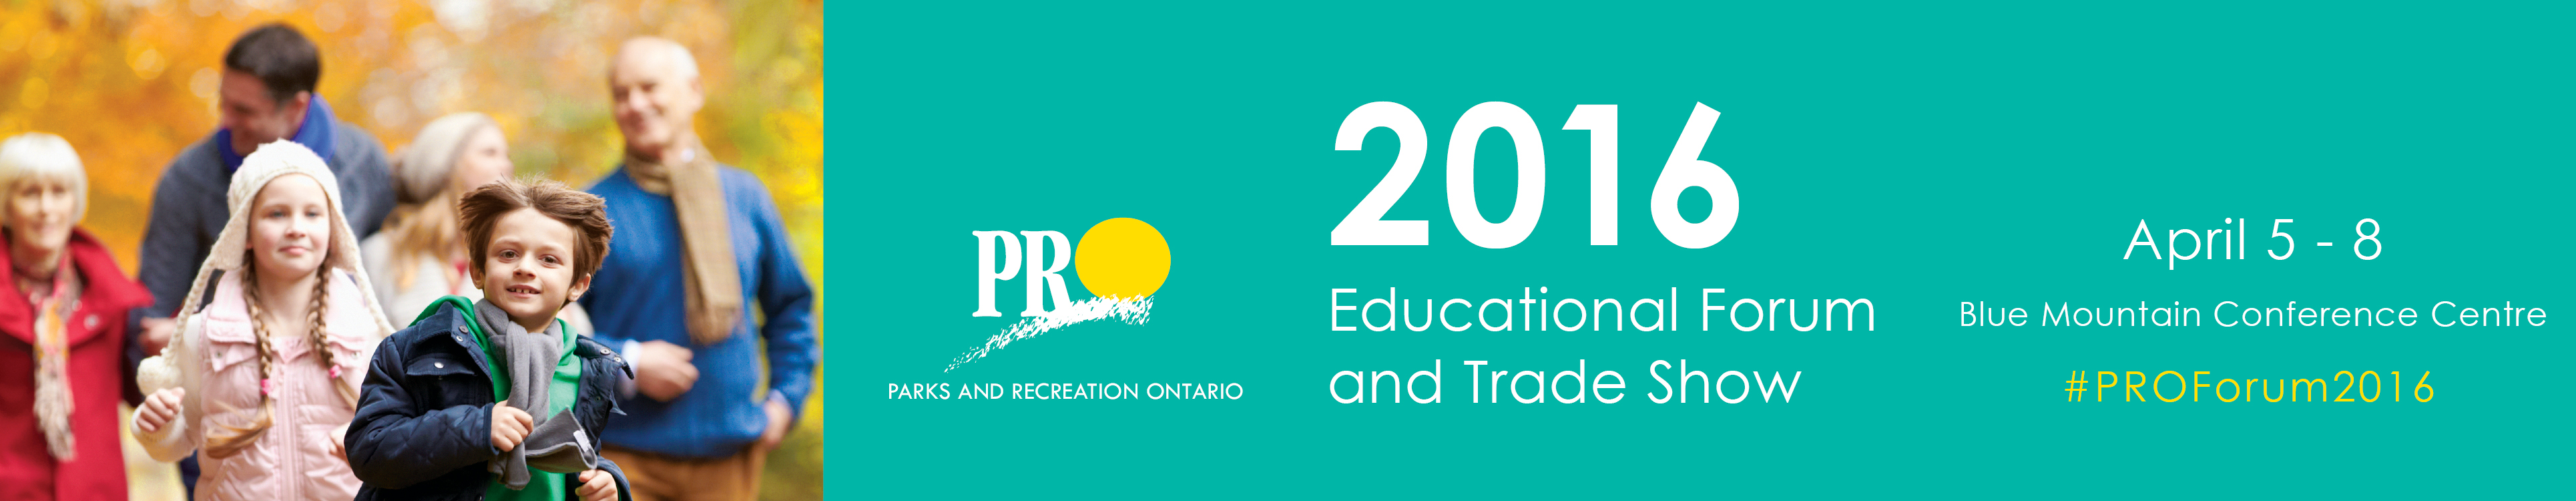 The 2016 Parks and Recreation Ontario Educational Forum and Trade Show